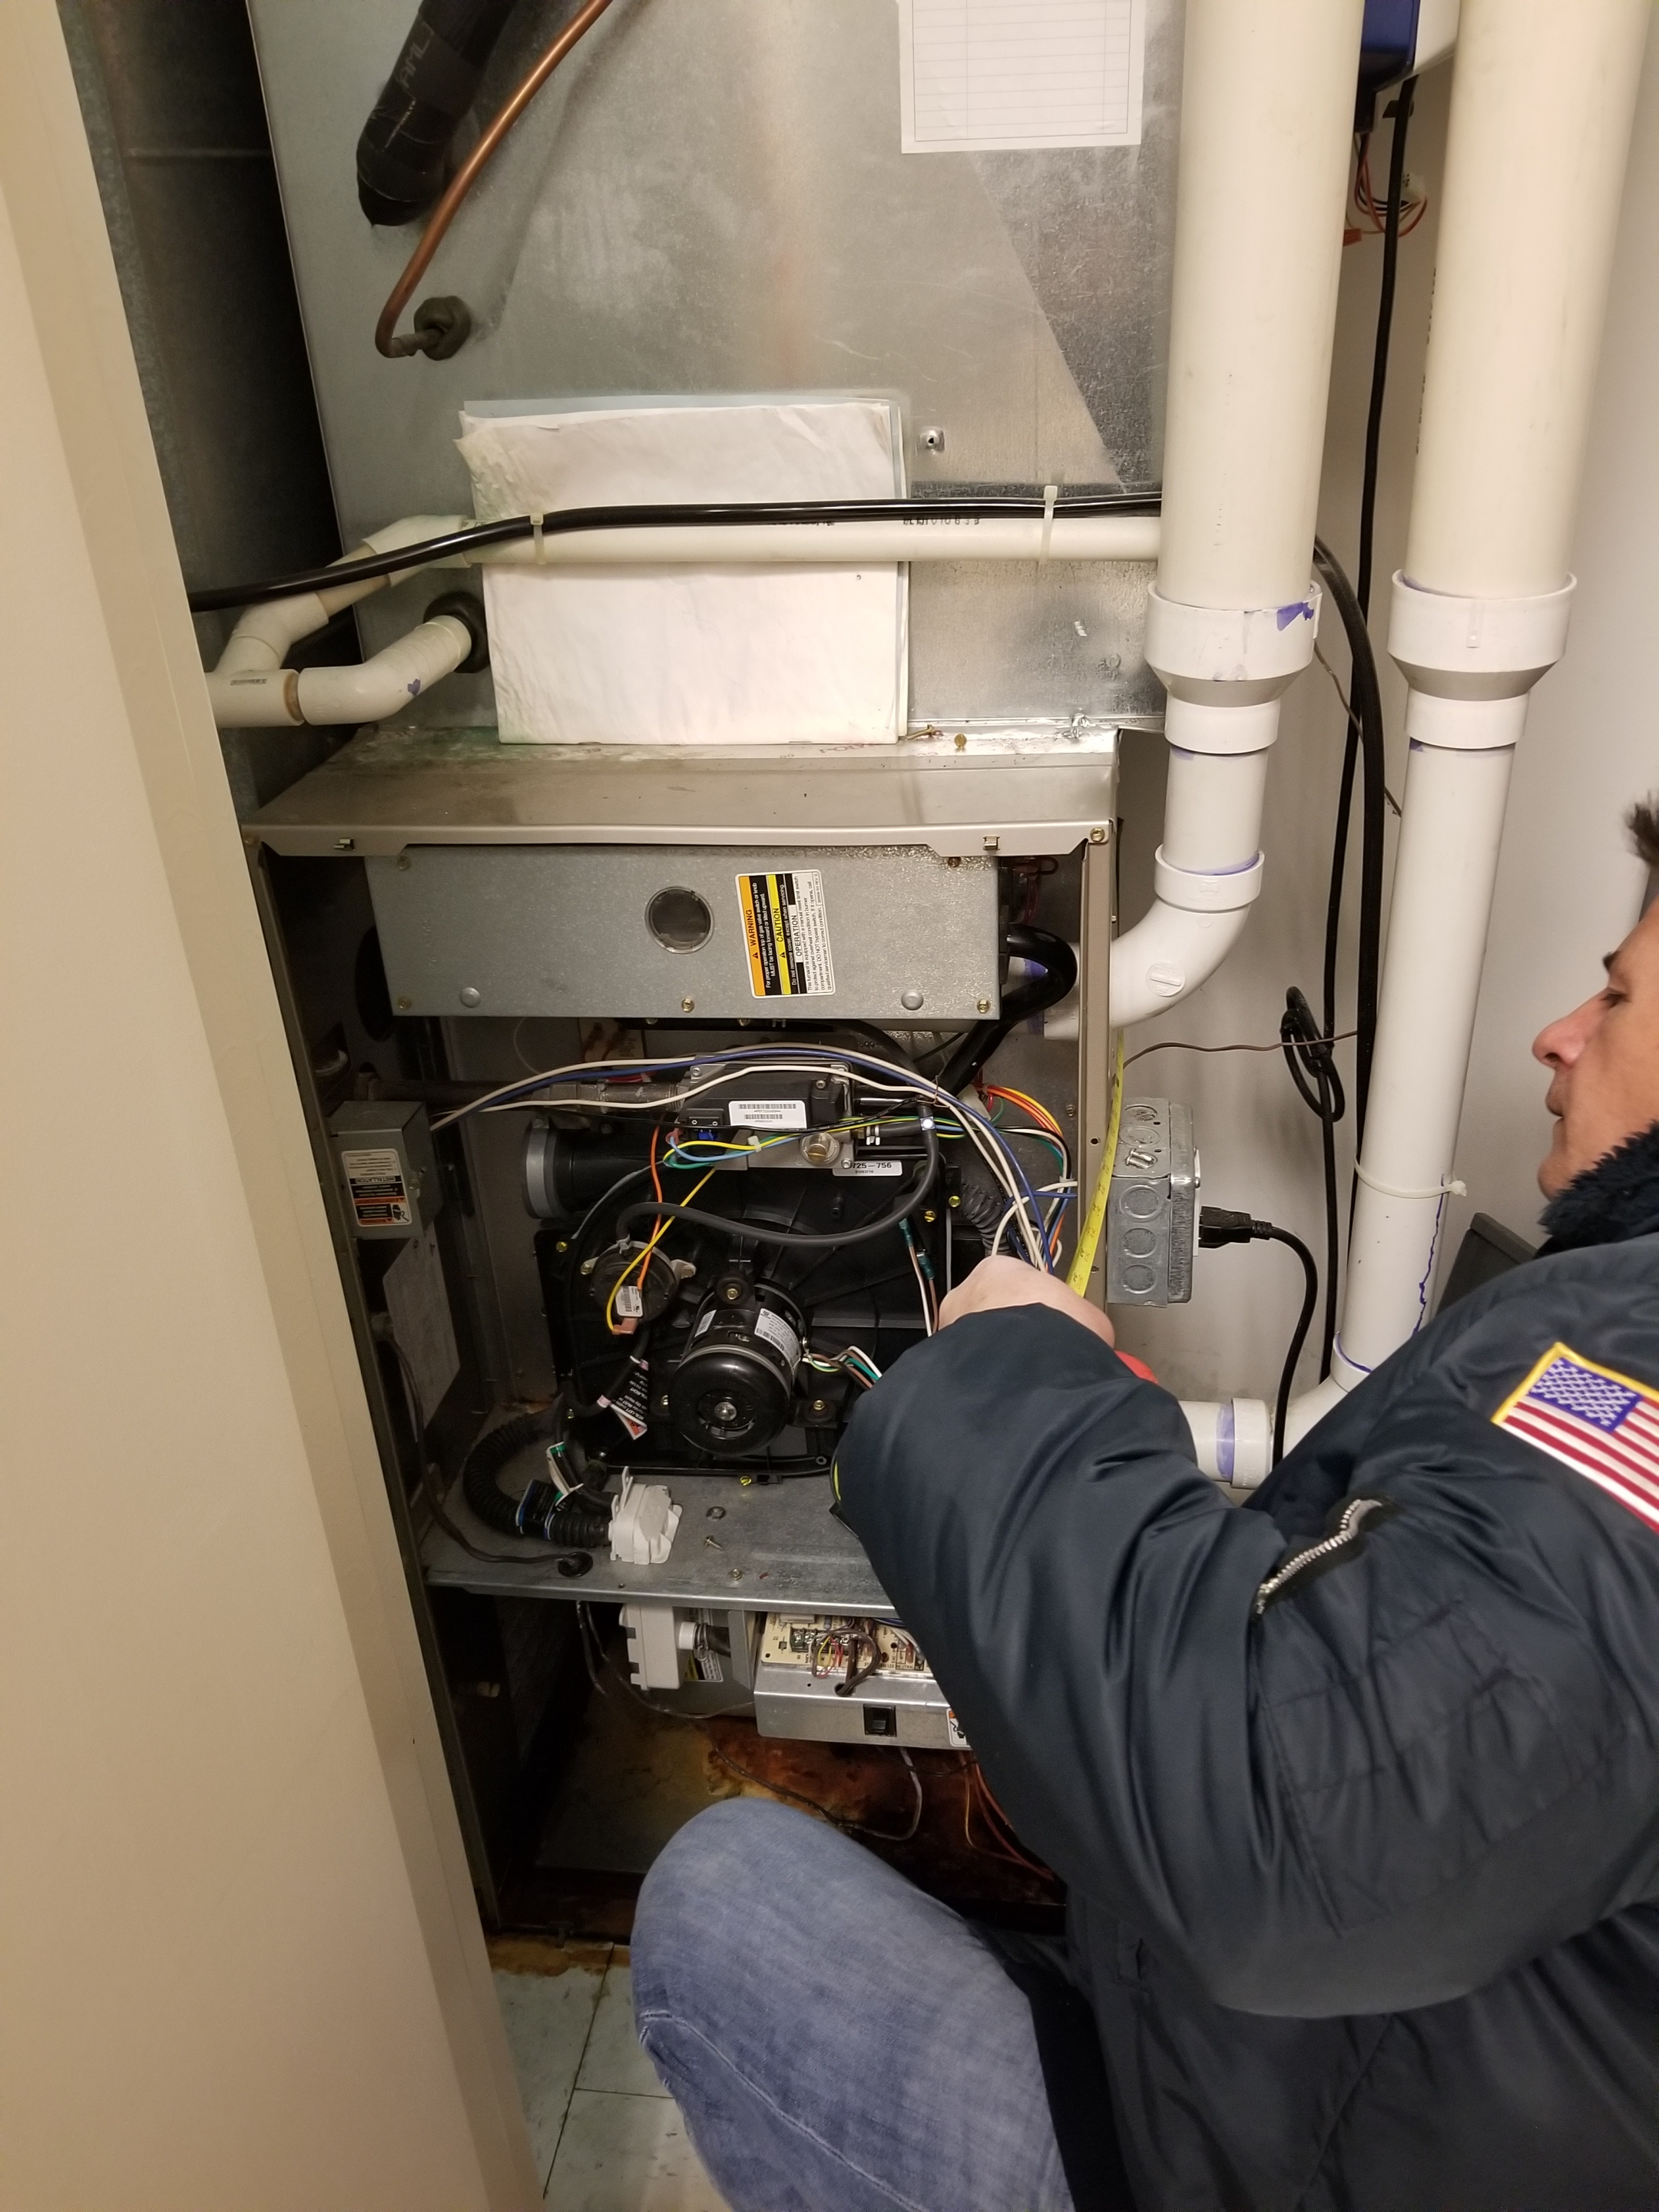 Repaired the Carrier furnace and made adjustments to improve the overall efficiency and life expectancy of the equipment